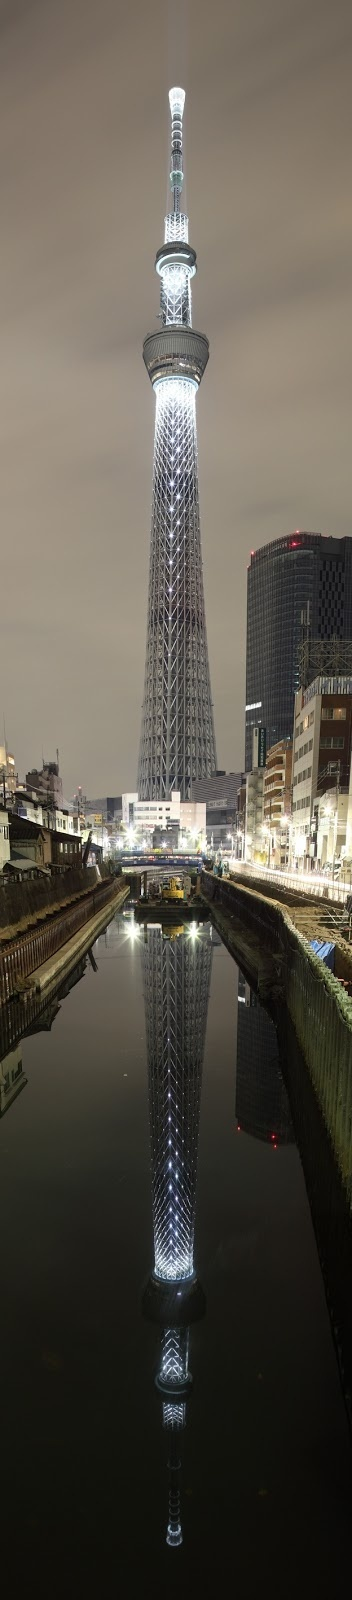 Tokyo+Skytree,+Japan....and its', reflection in the reflecting pool...